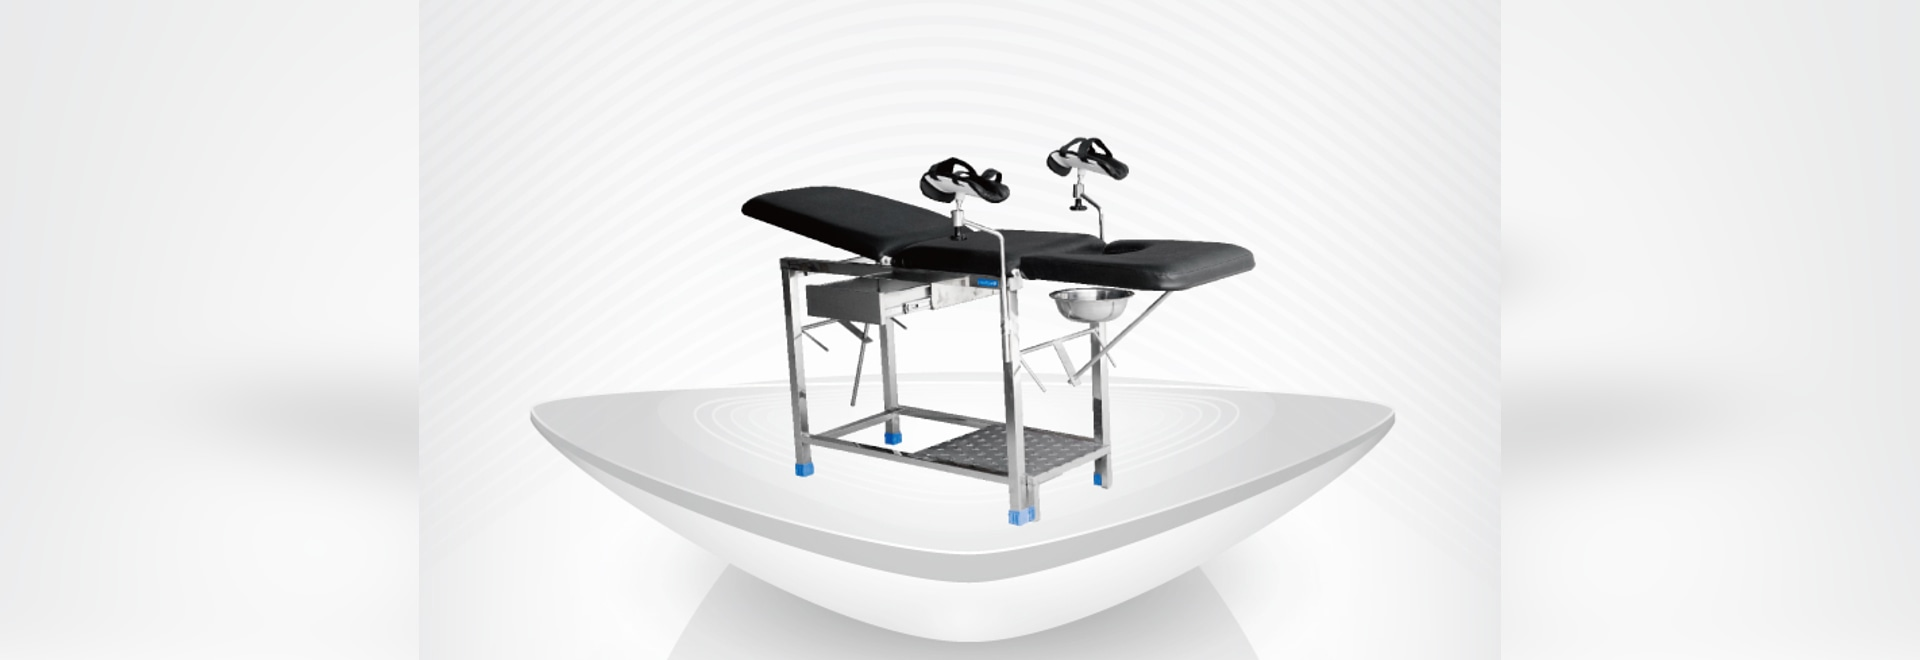 Gynaecological Examination Table / Hamiltion type / backrest up / foot stool